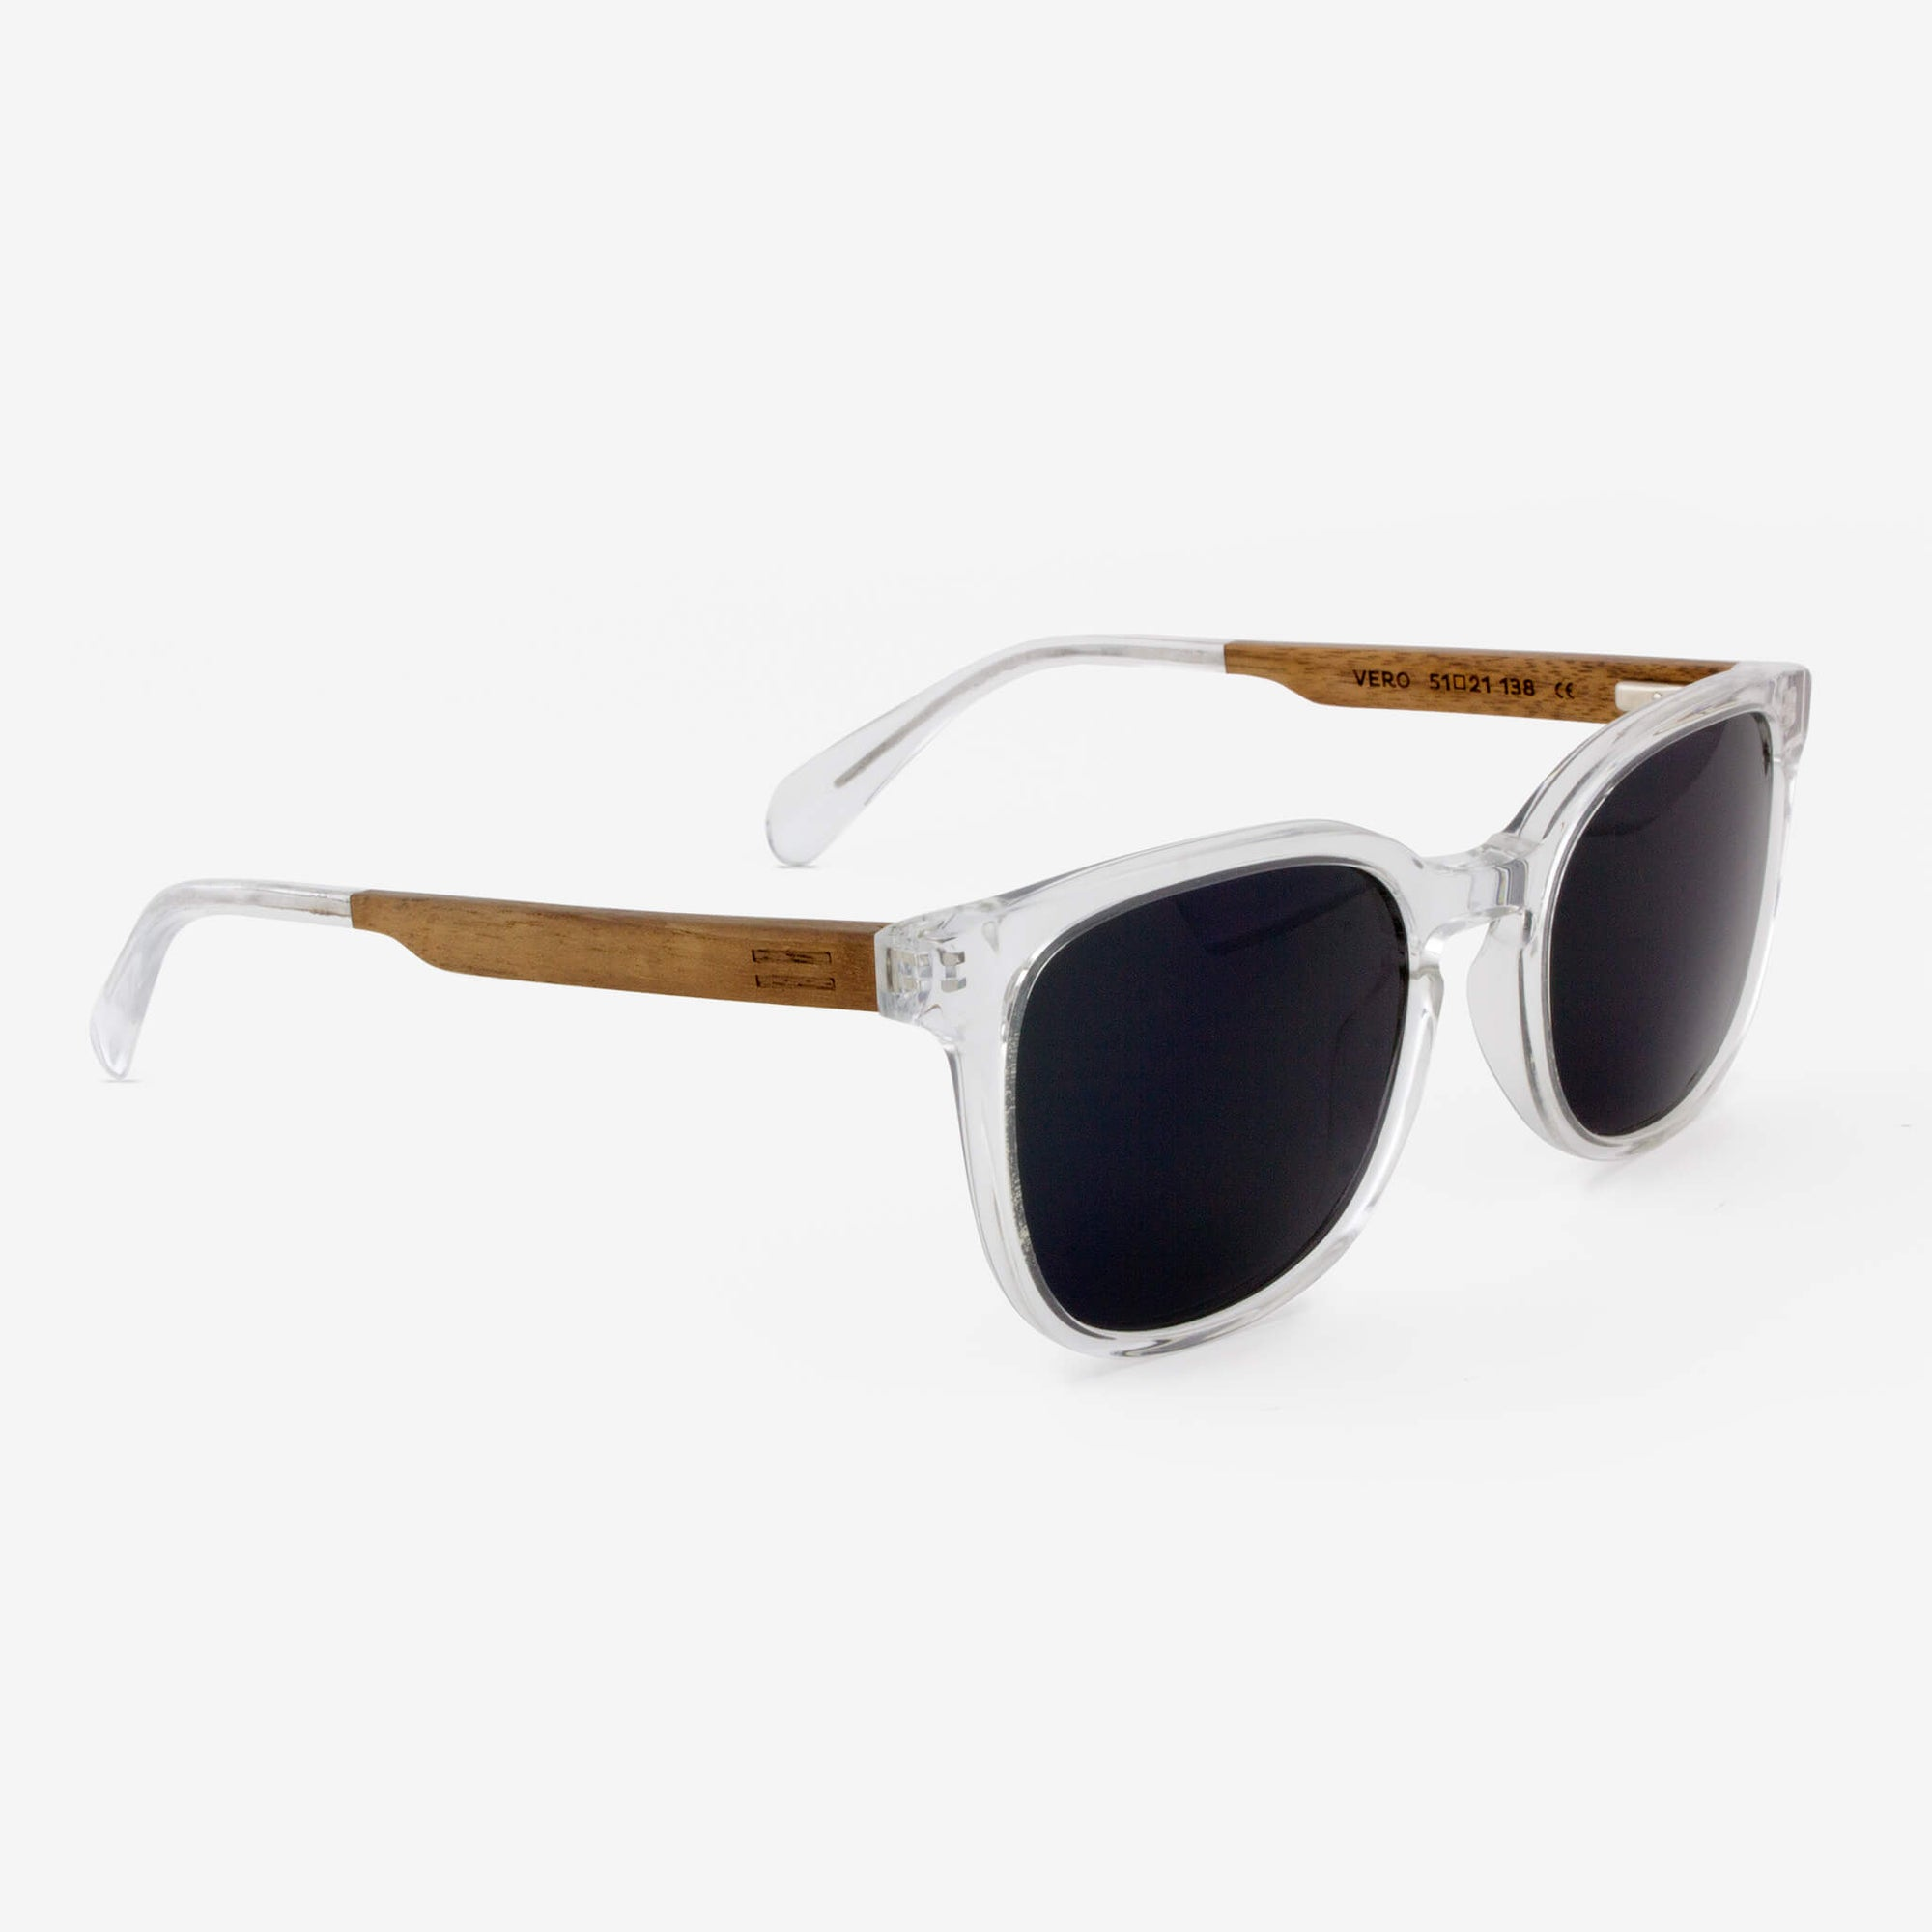 Vero clear acetate and wood sunglasses